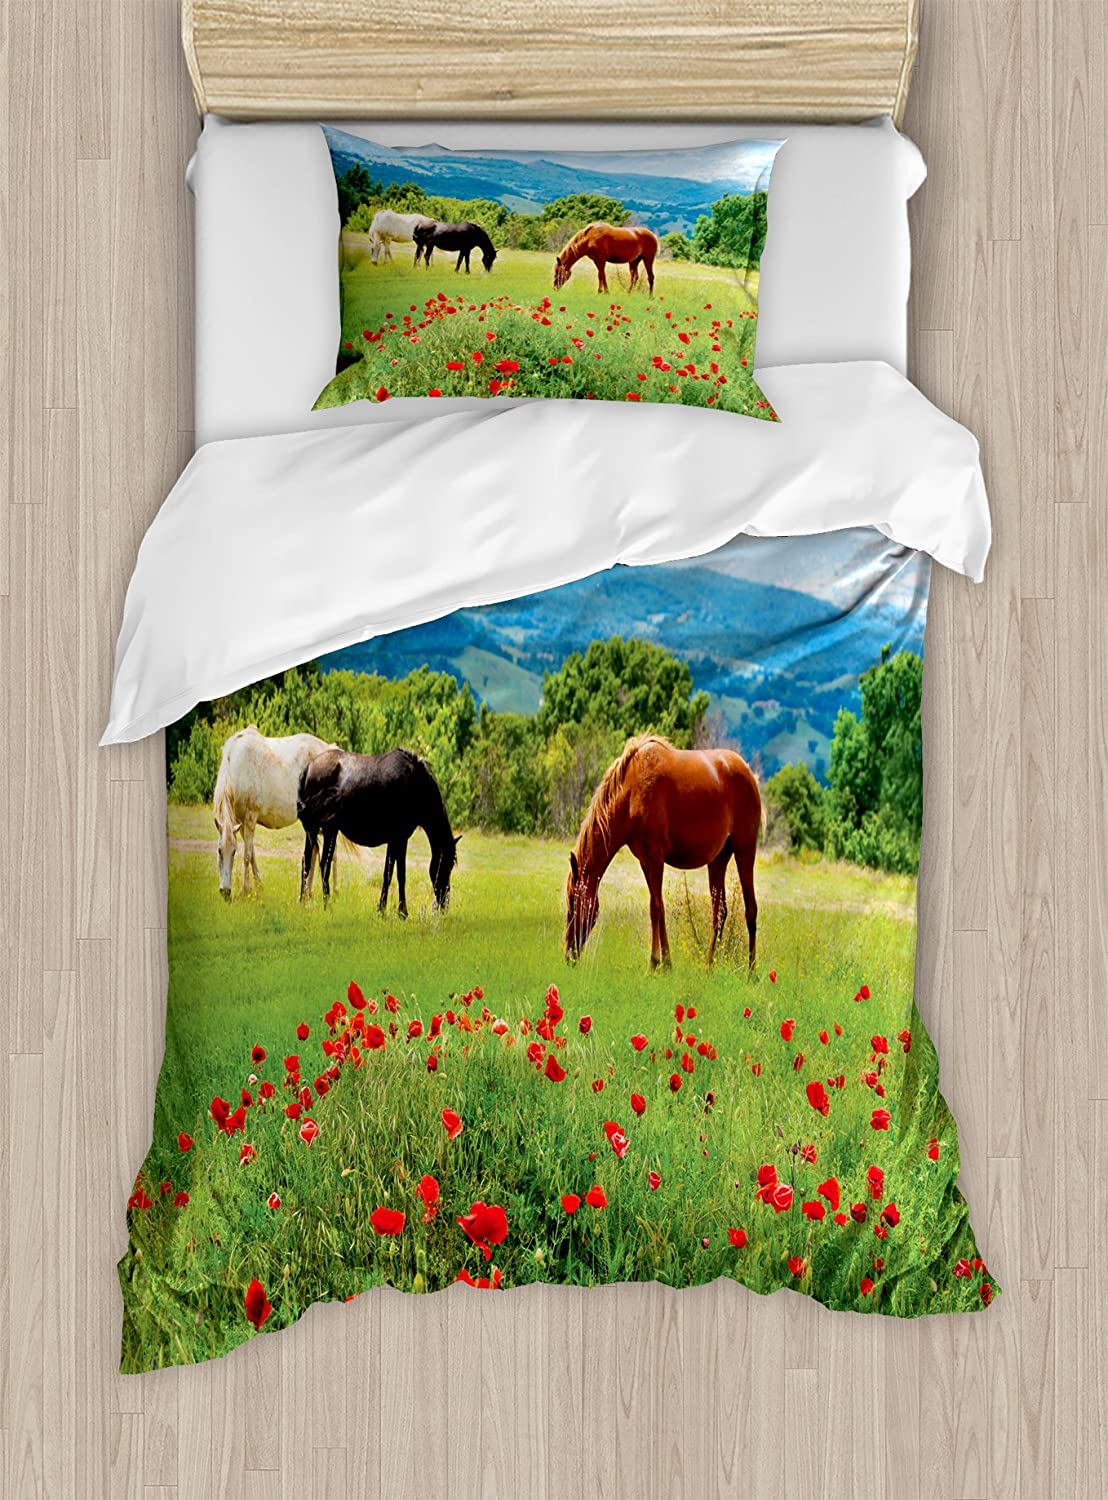 Ambesonne Horses Duvet Cover Set, Various Kinds of Horses Eating Grass in Field Mountain Landscape Rural Scene Print, Decorative 2 Piece Bedding Set with 1 Pillow Sham, Twin Size, Green Red